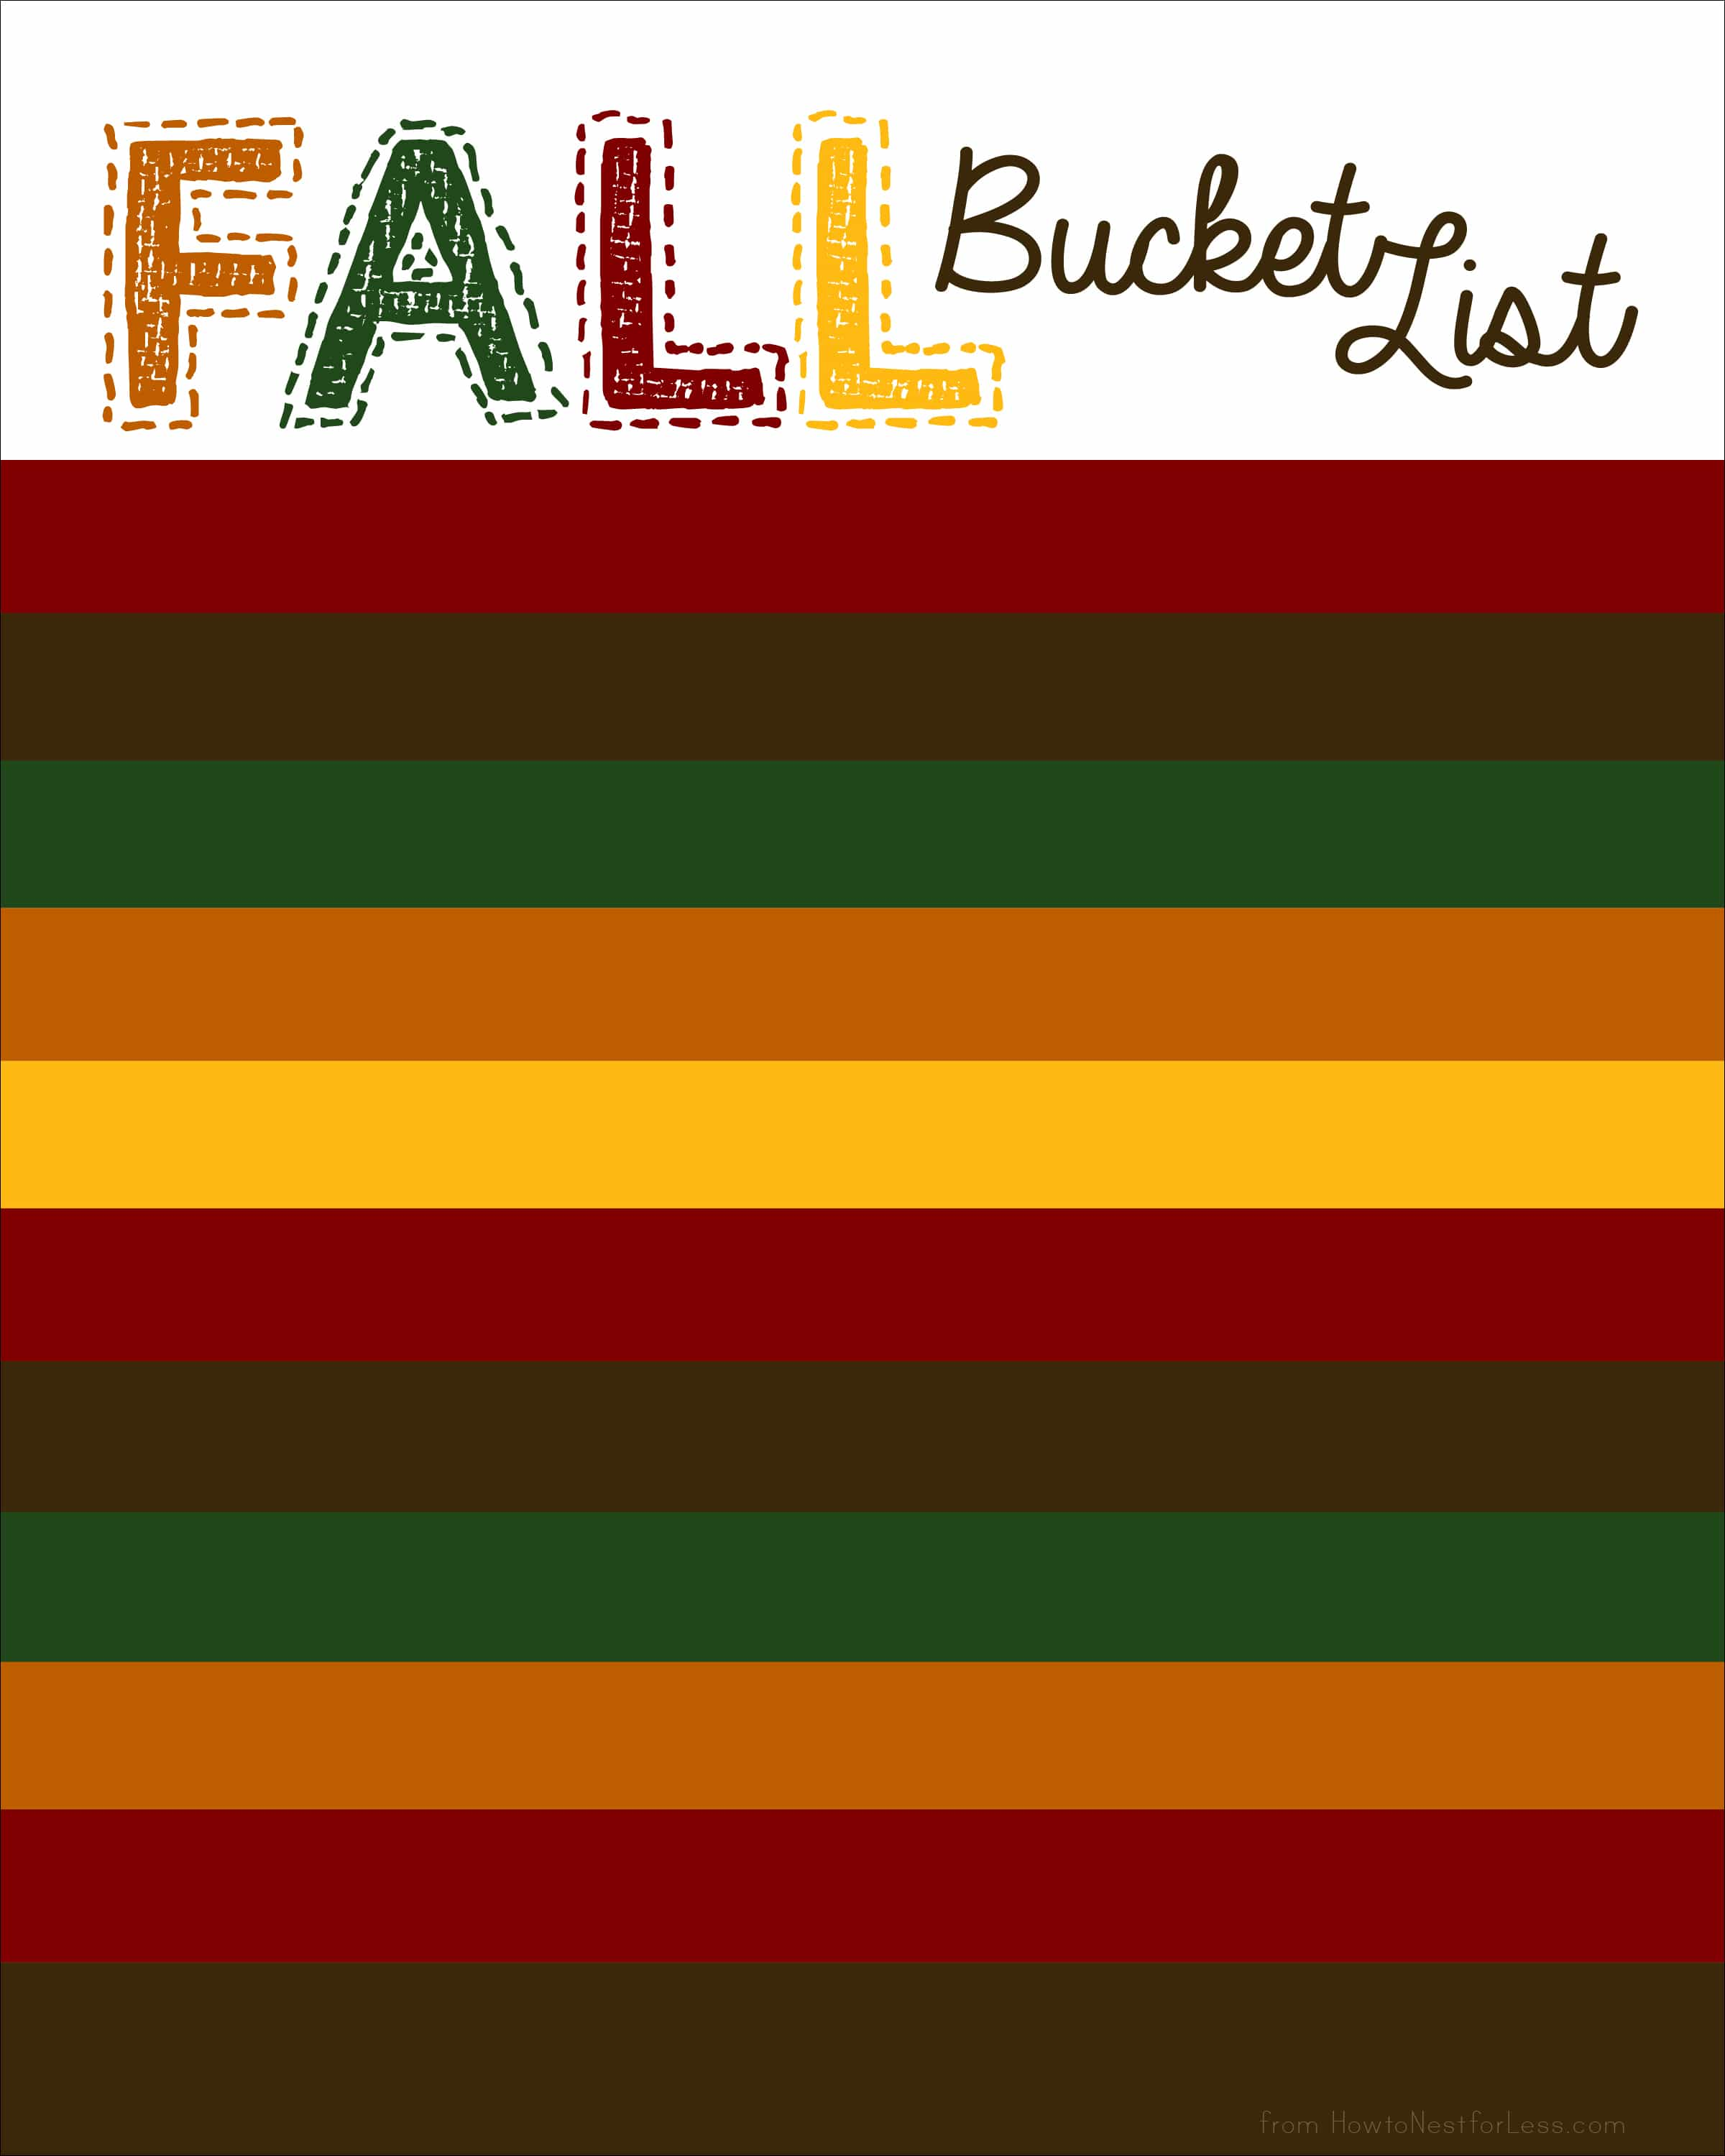 Fall Bucket List template